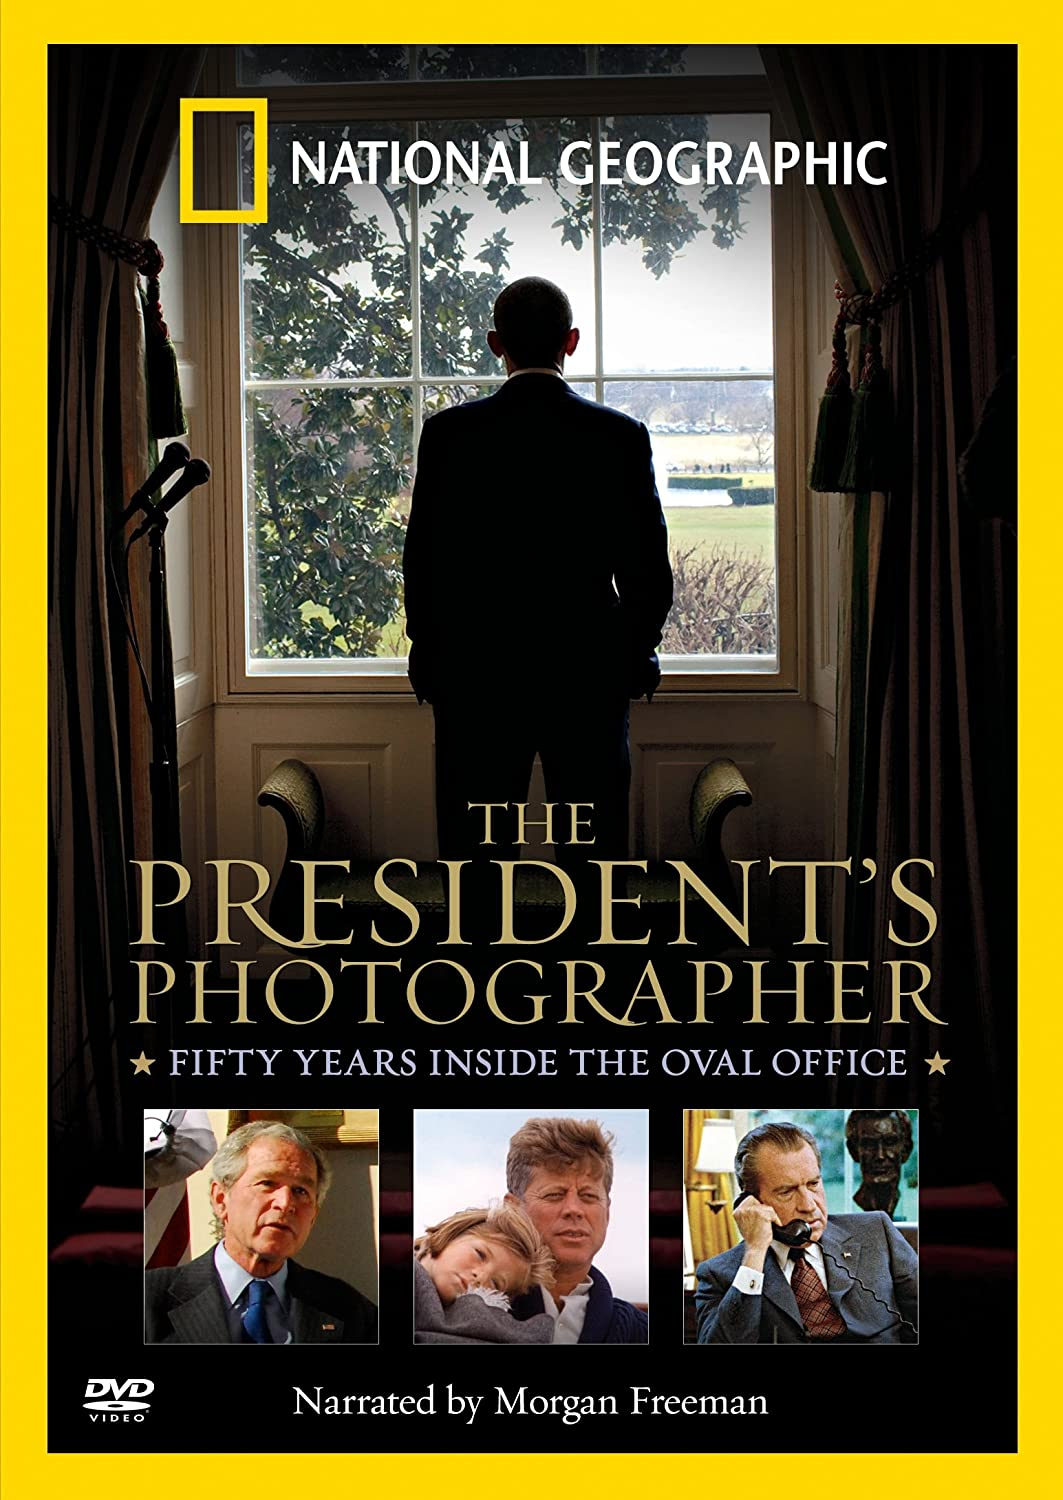 amazoncom the presidents photographer 50 years inside the oval office morgan freeman movies tv amazoncom white house oval office